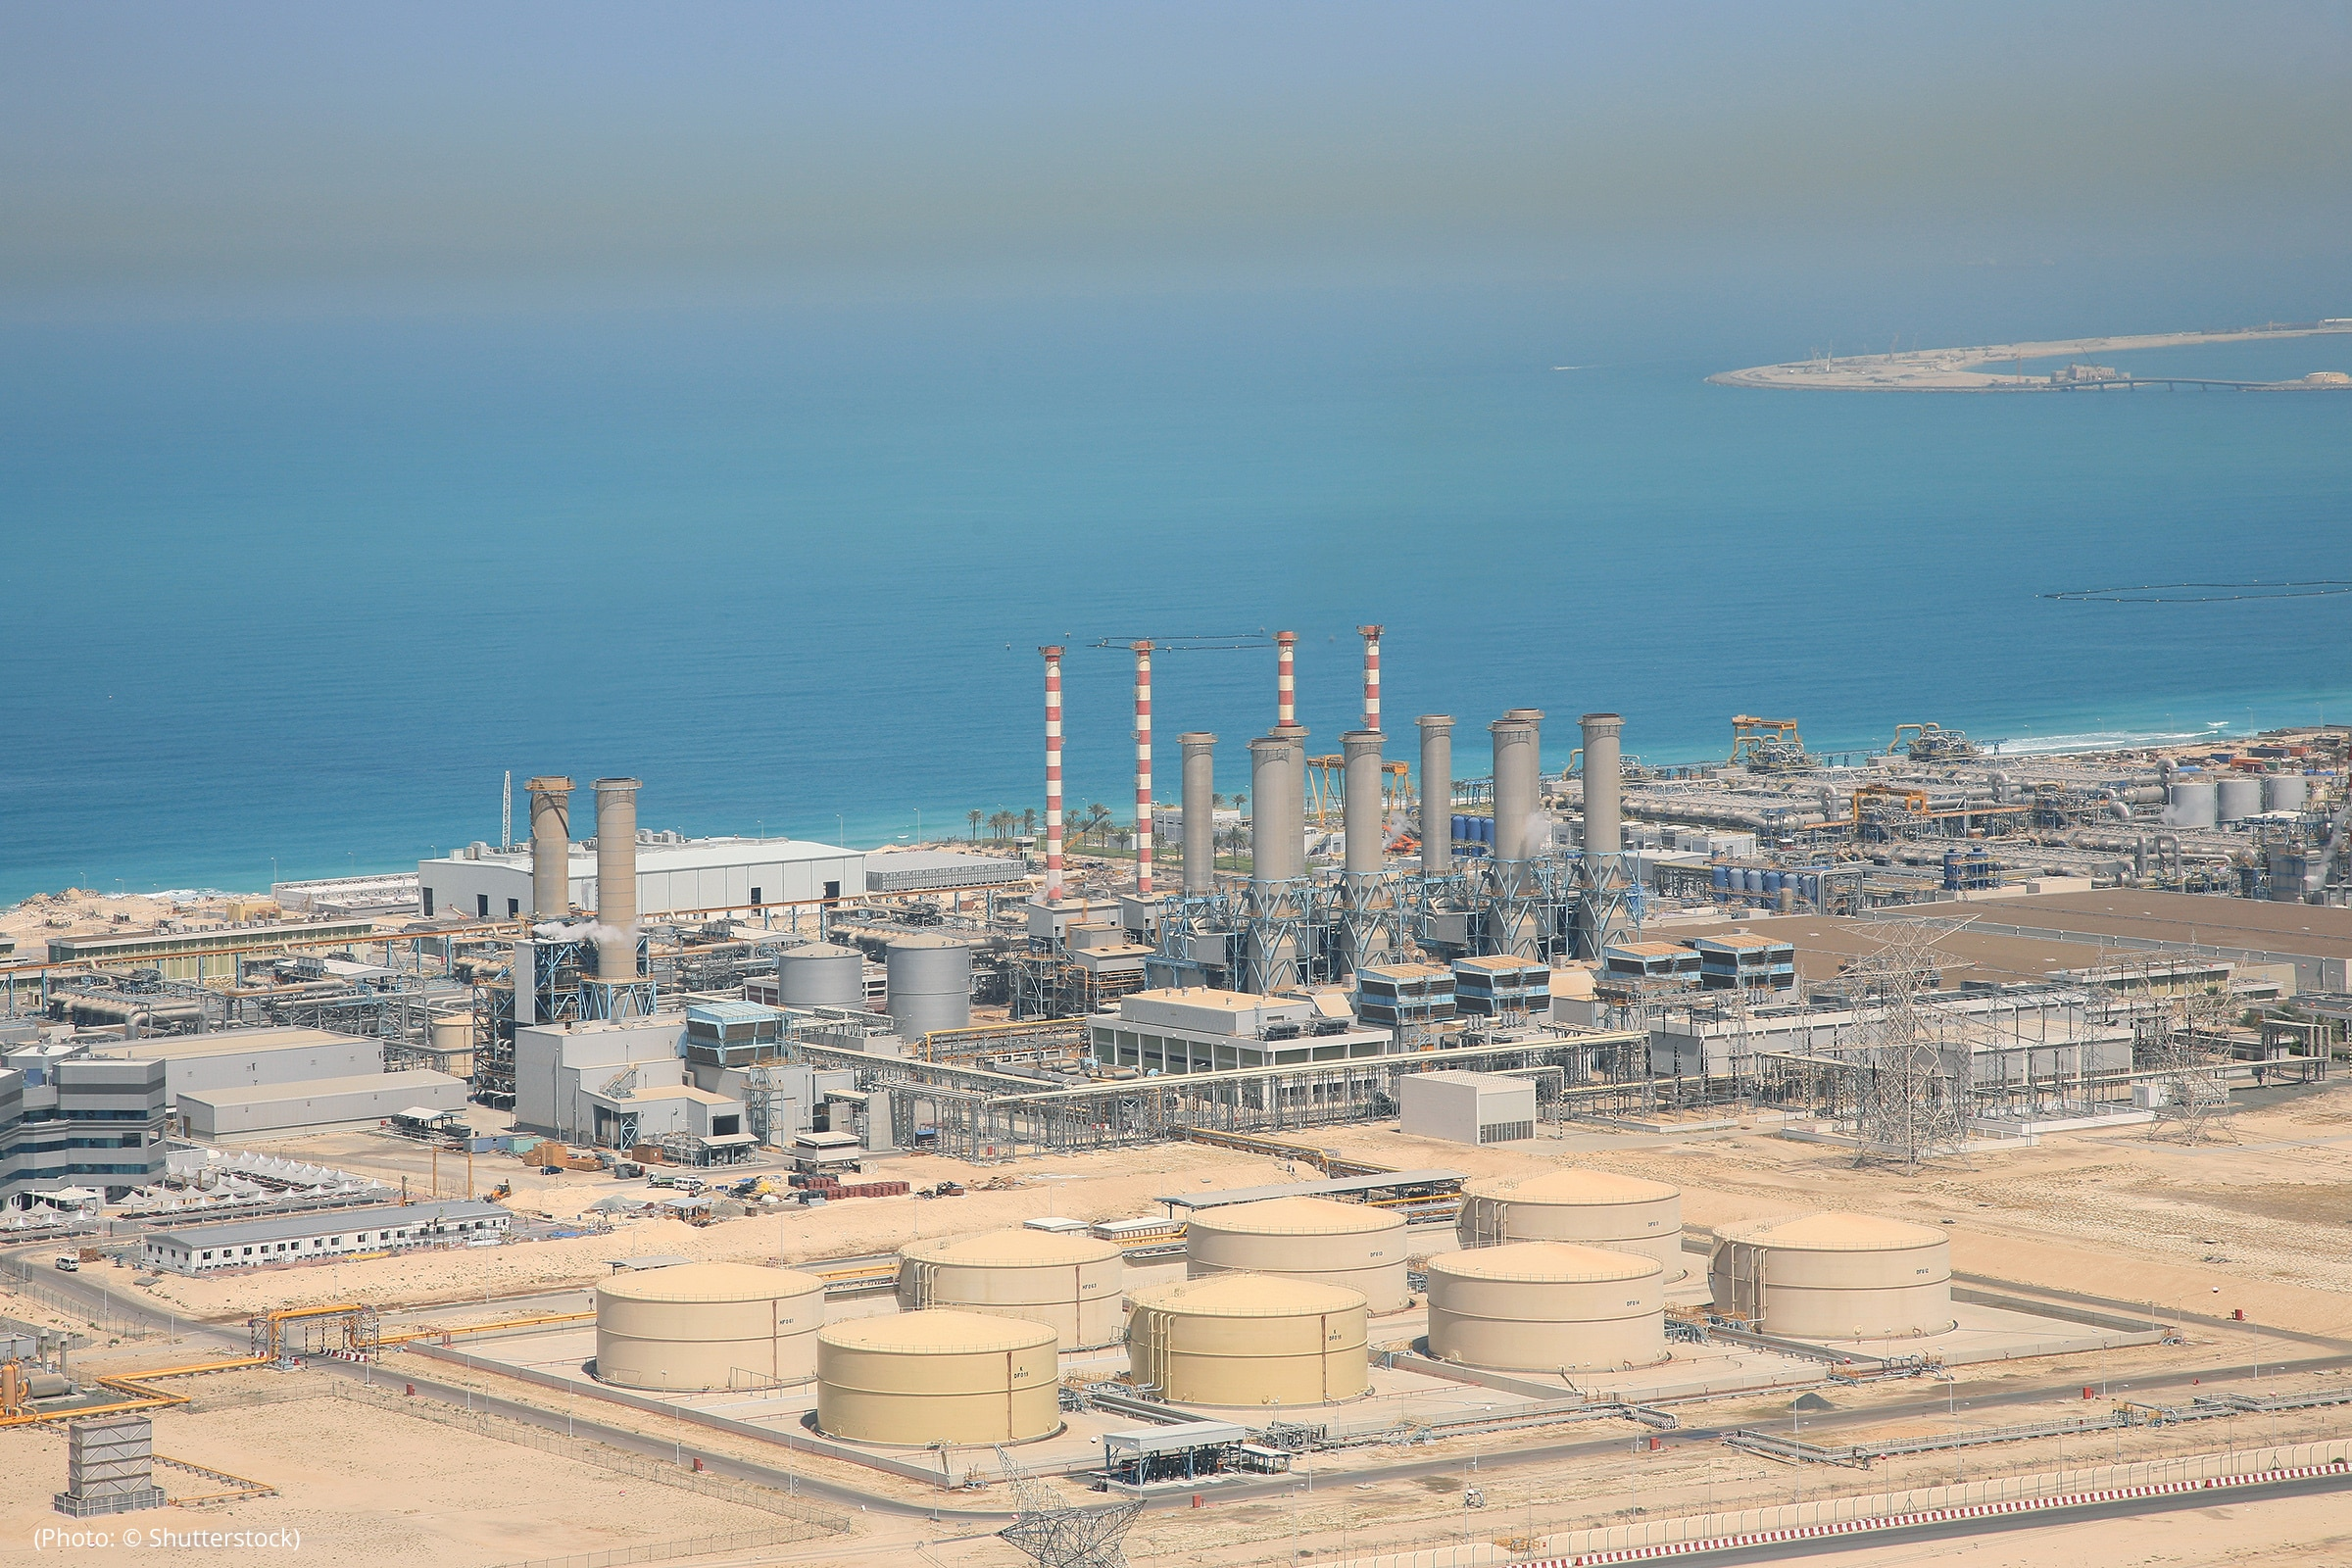 Desalination plants, like this one in Dubai, can convert saltwater into freshwater that is safe for human consumption and agriculture. (Photo: © Shutterstock)